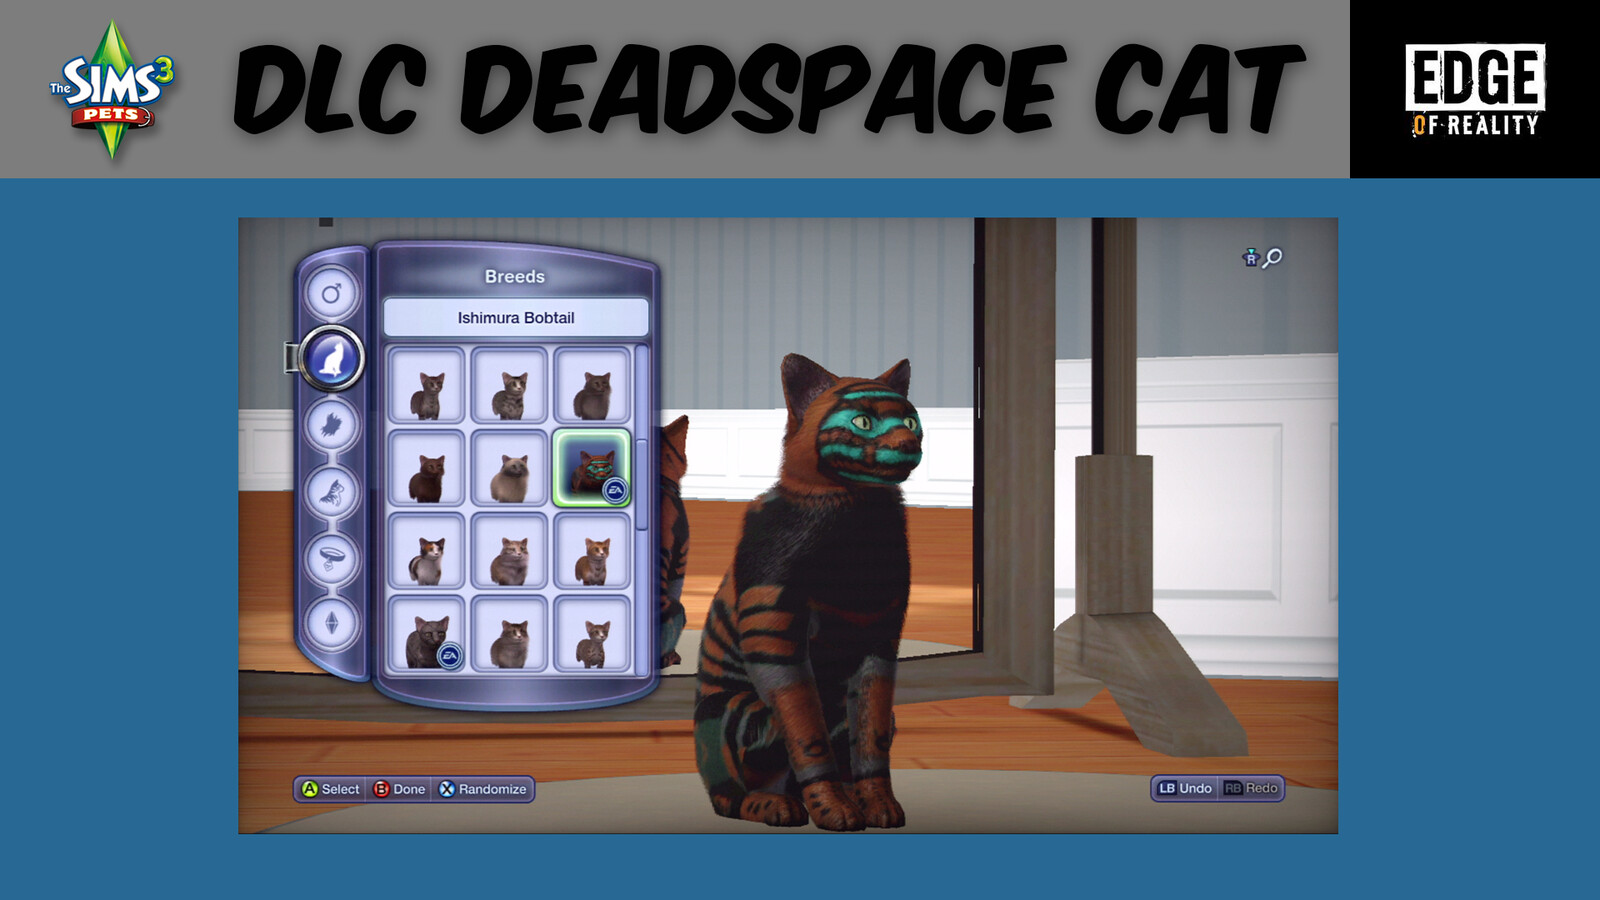 Responsible for pattern design for Dead Space Cat.